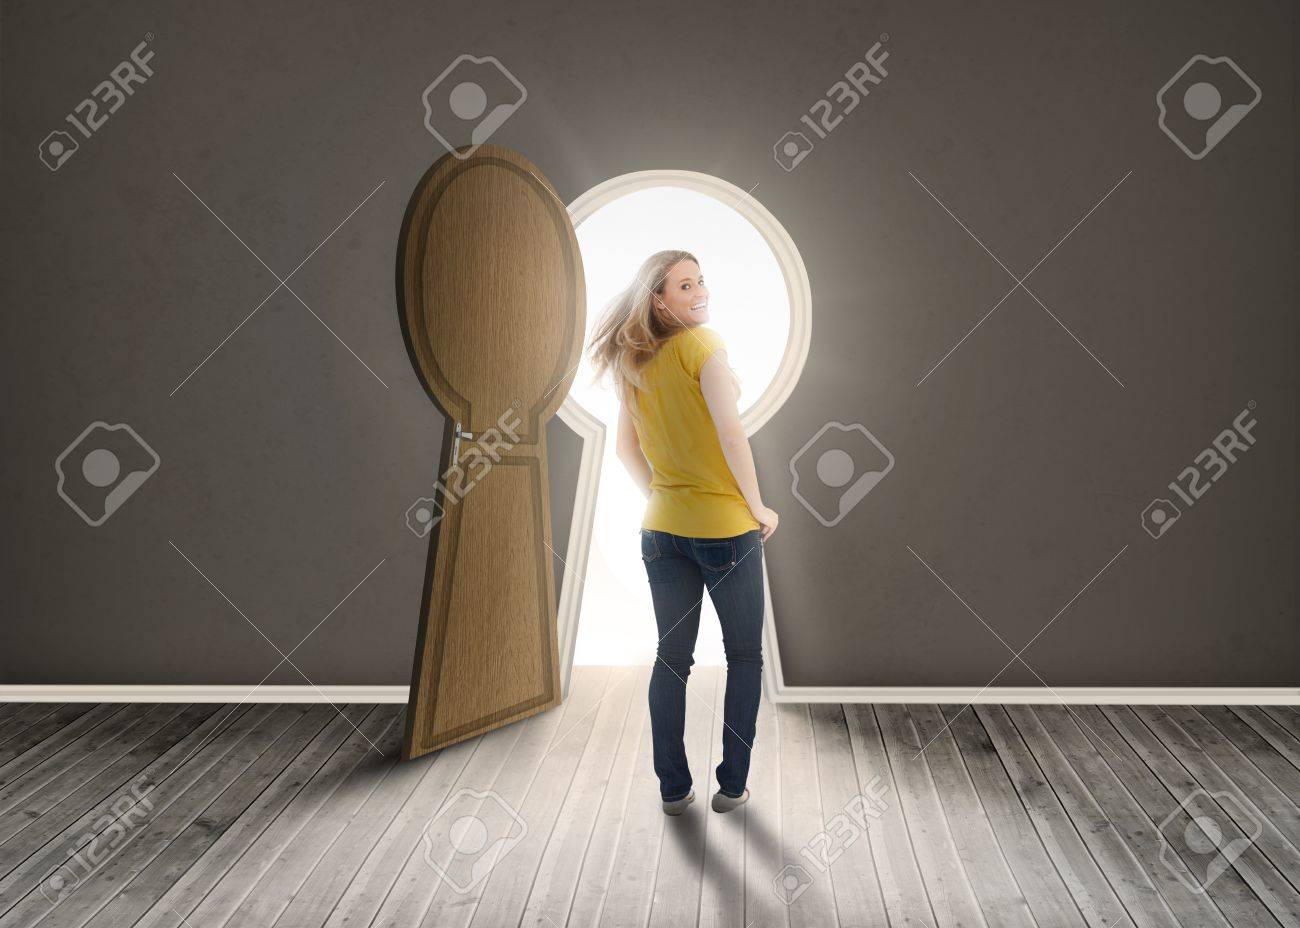 Stock Photo - Woman walking towards keyhole shaped doorway with light ikn dark grey room & Woman Walking Towards Keyhole Shaped Doorway With Light Ikn Dark ...